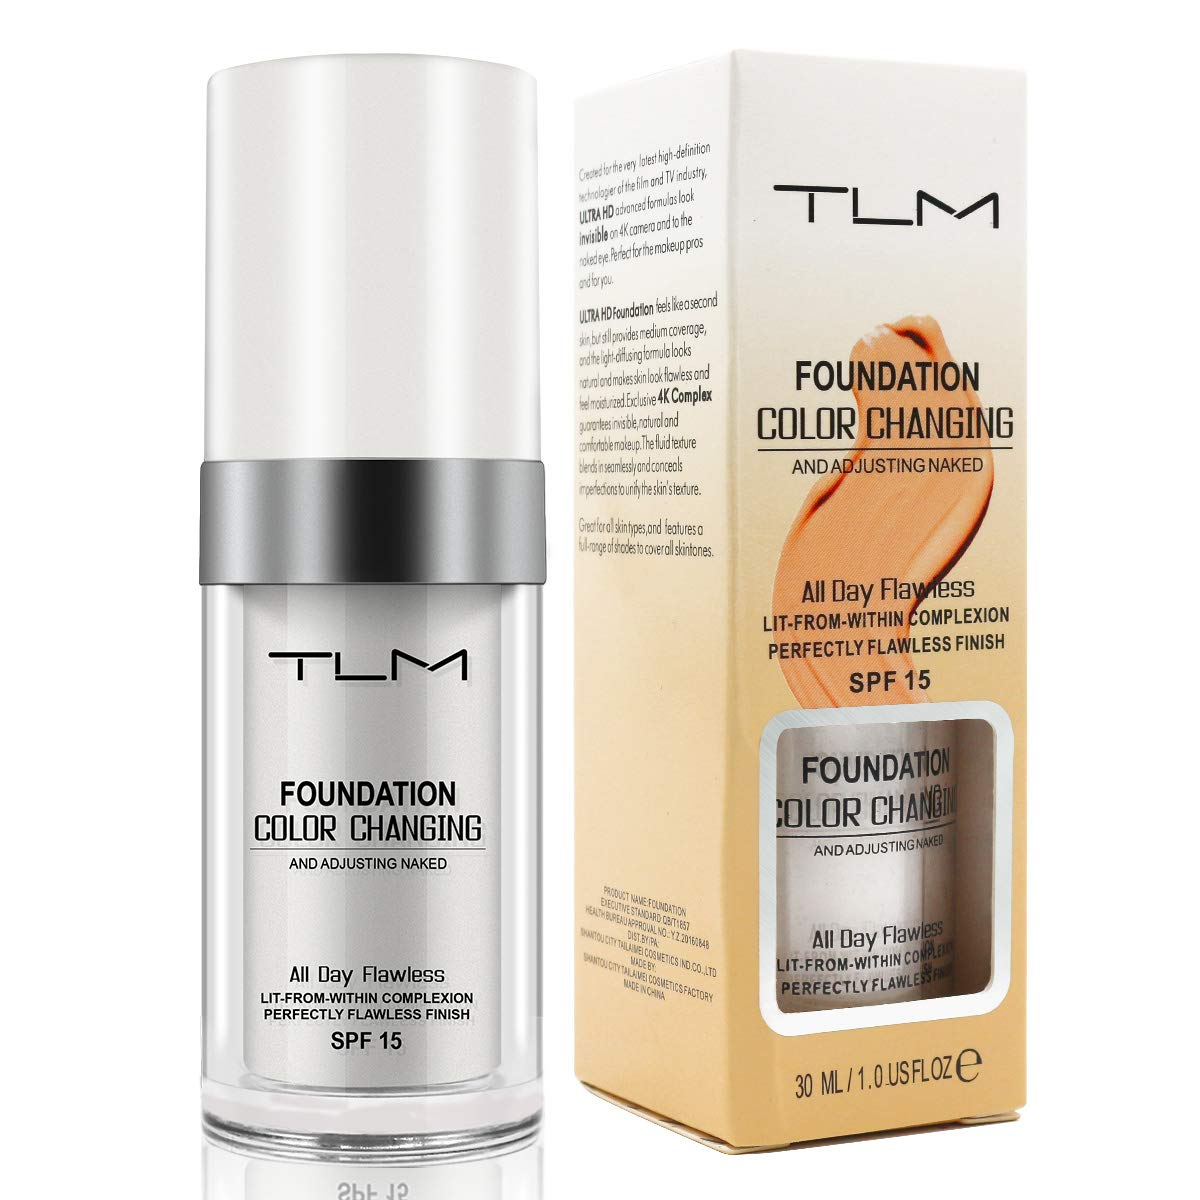 TLM Concealer Cover Cream, Foundation Fluid, Warm Skin Tone, Flawless Colour Changing Foundation Makeup, Cosmetics for Women and Girls